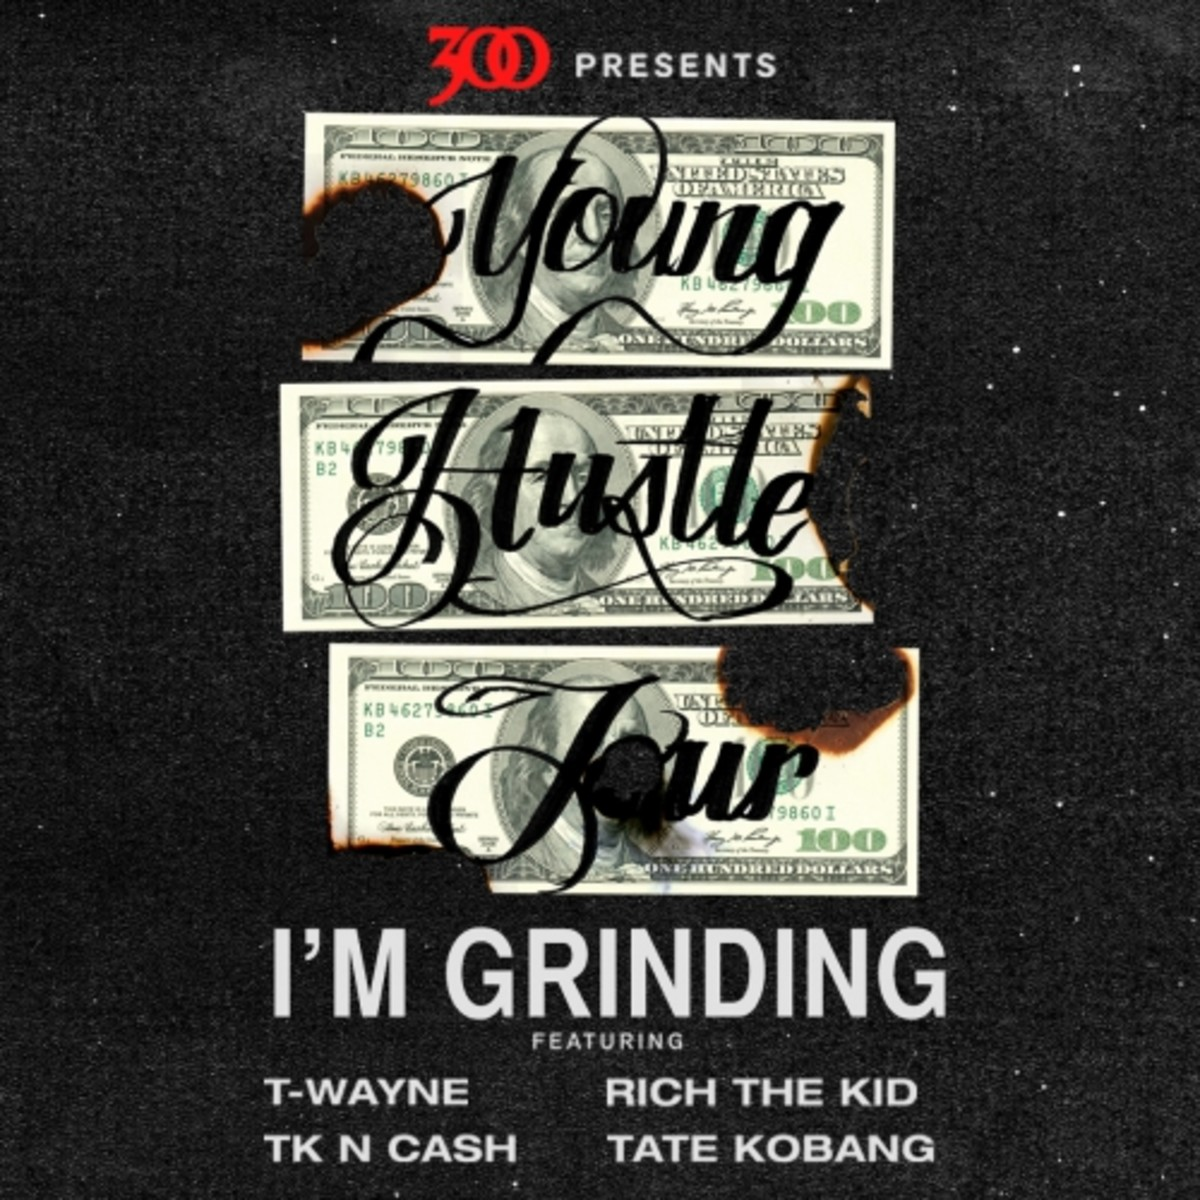 young-hustle-tour-im-grinding.jpg